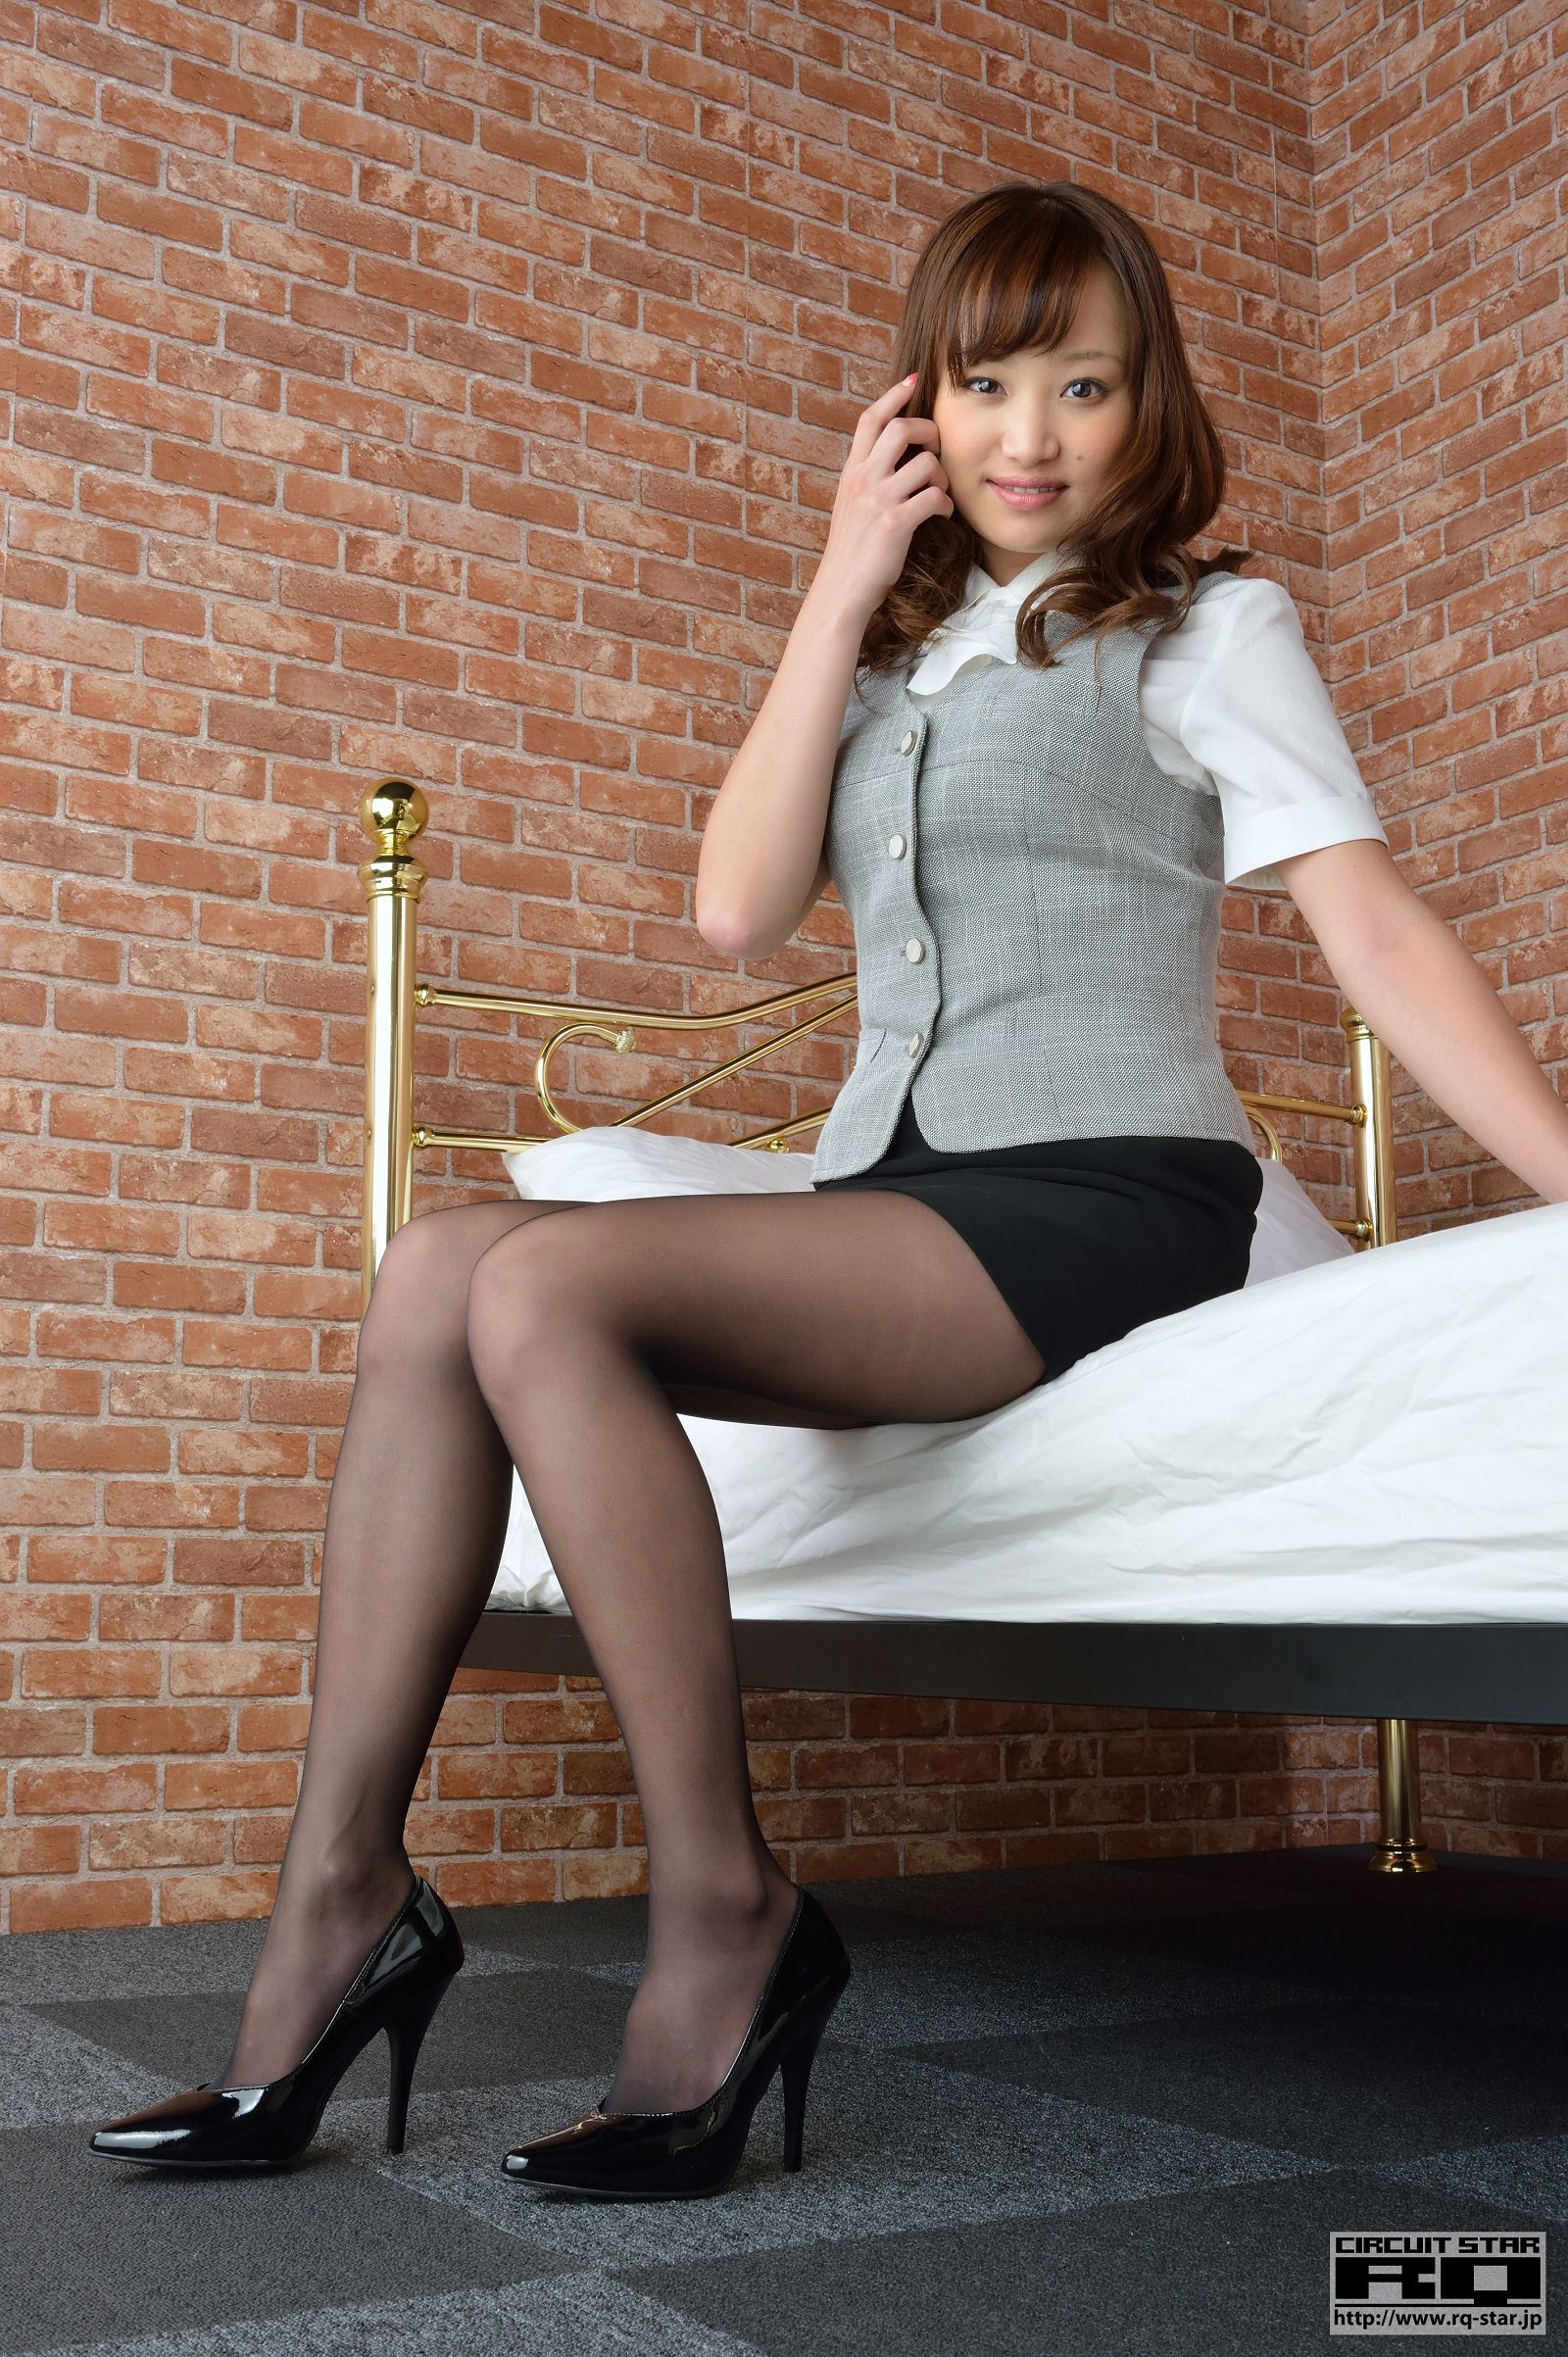 [RQ STAR美女] NO.00705 Yurika Aoi 葵ゆりか Office Lady[110P] RQ STAR 第1张